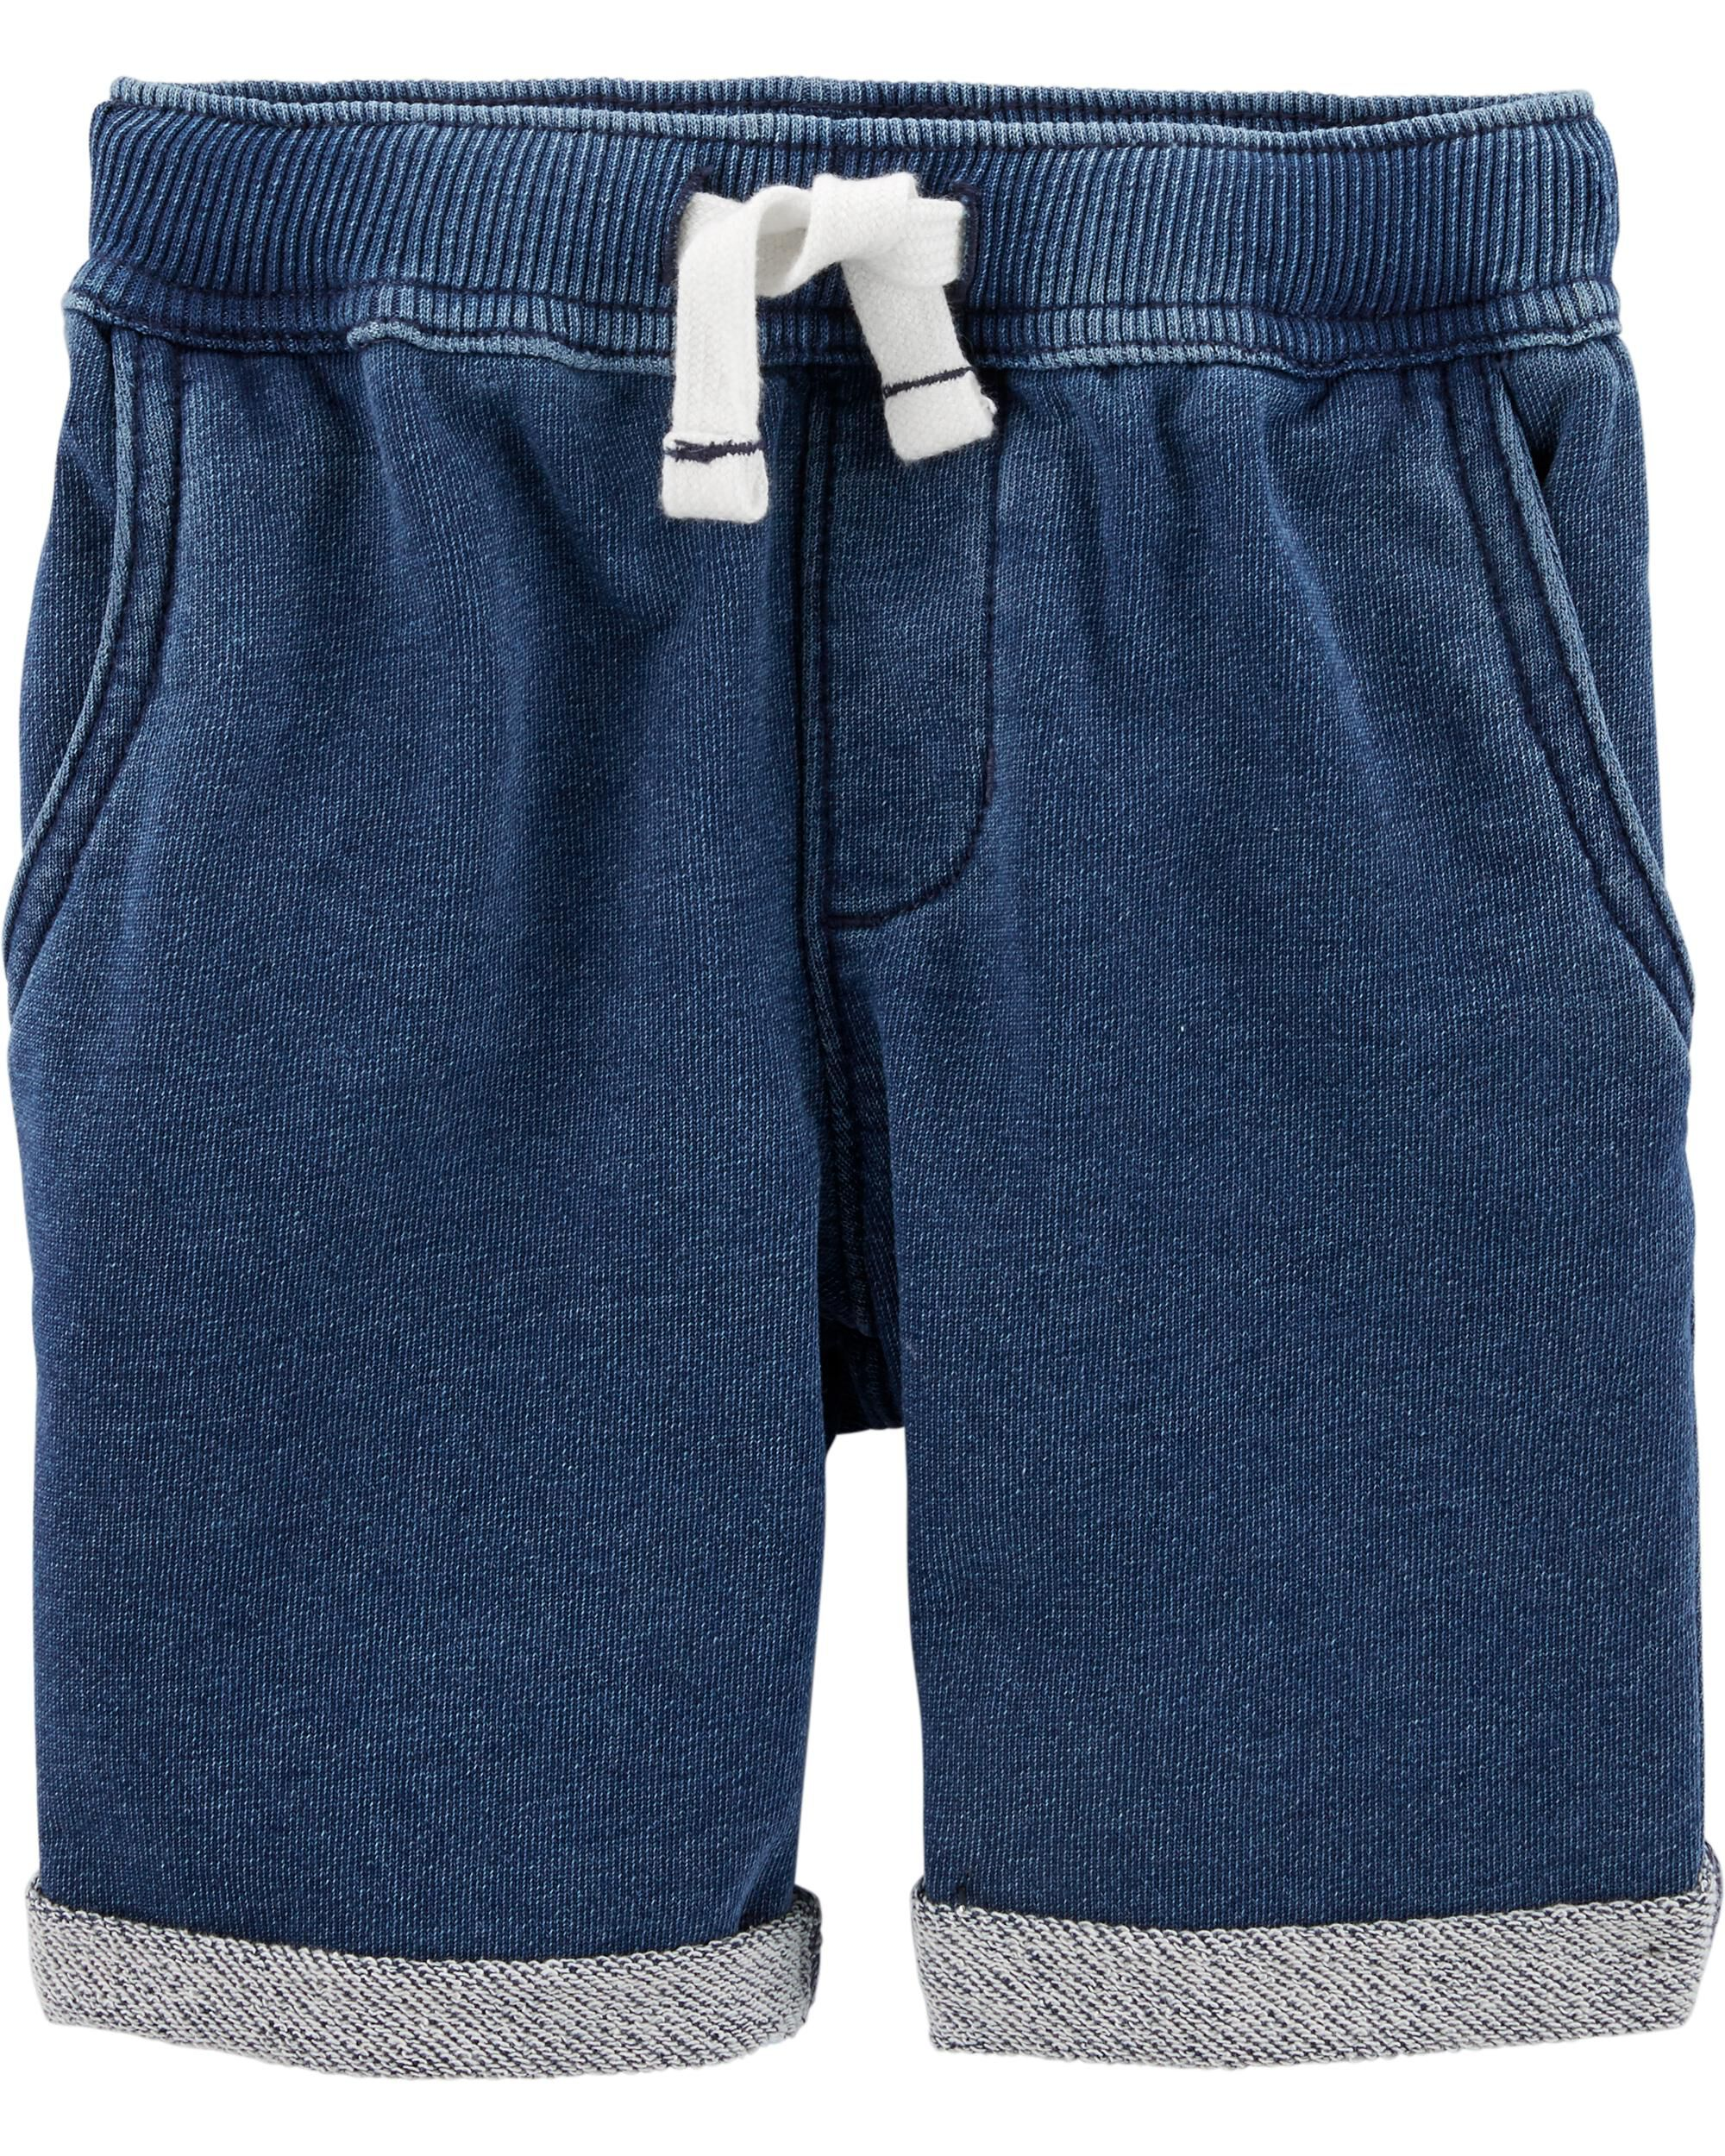 *CLEARANCE* Pull-On Knit Denim Shorts